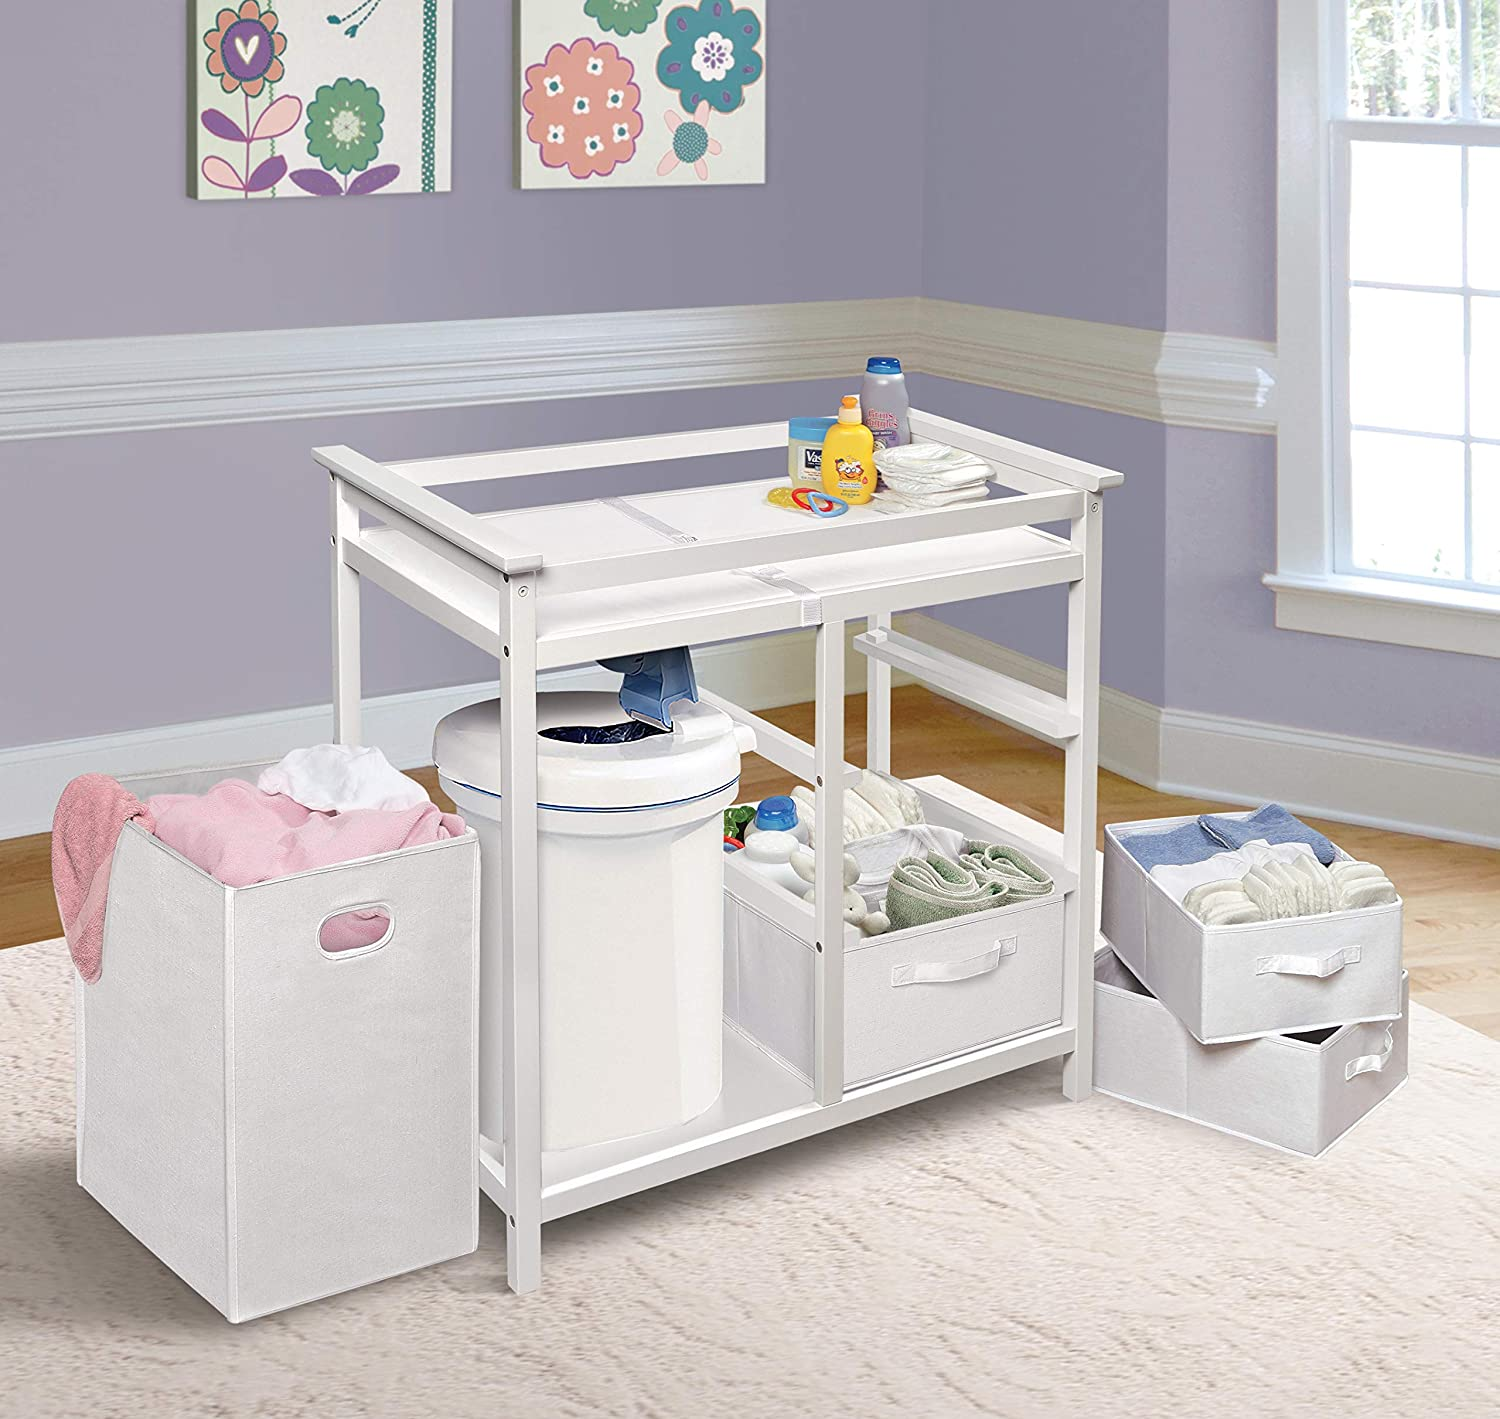 Fresh White//White 3 Storage Baskets Badger Basket Modern Baby Changing Table with Laundry Hamper /& Pad